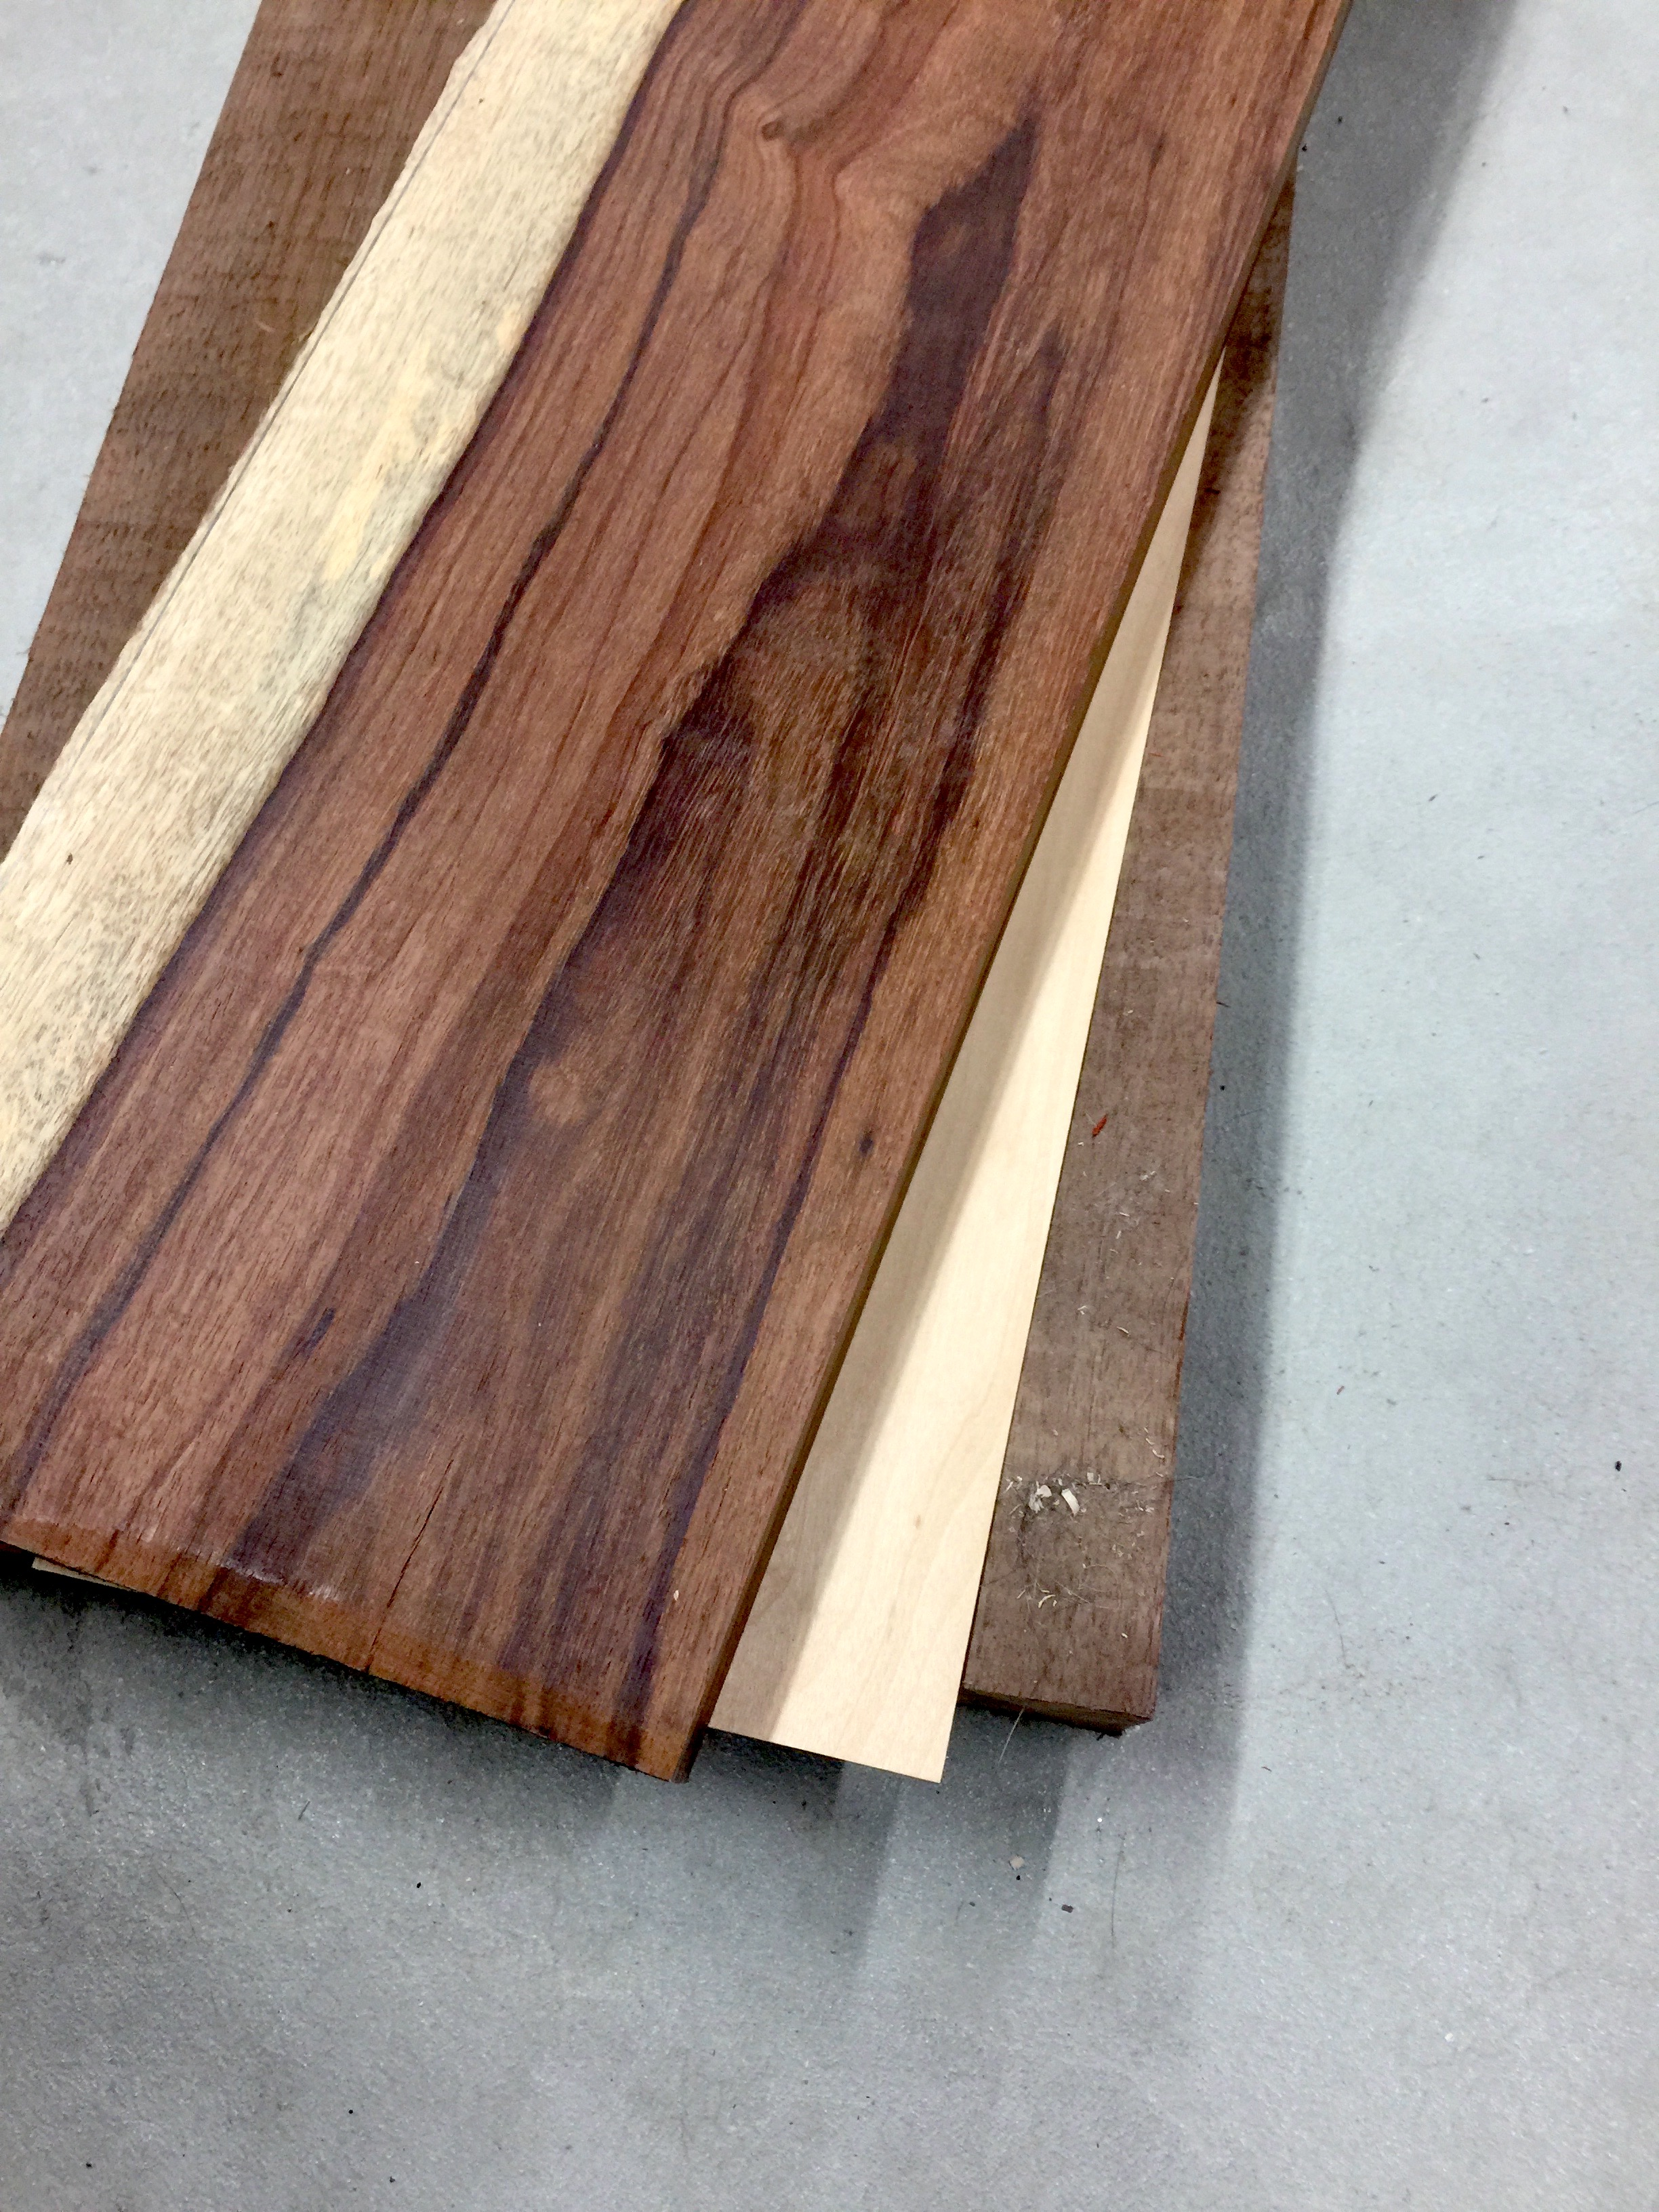 Grandillo over walnut with maple accent - Top and back.jpg